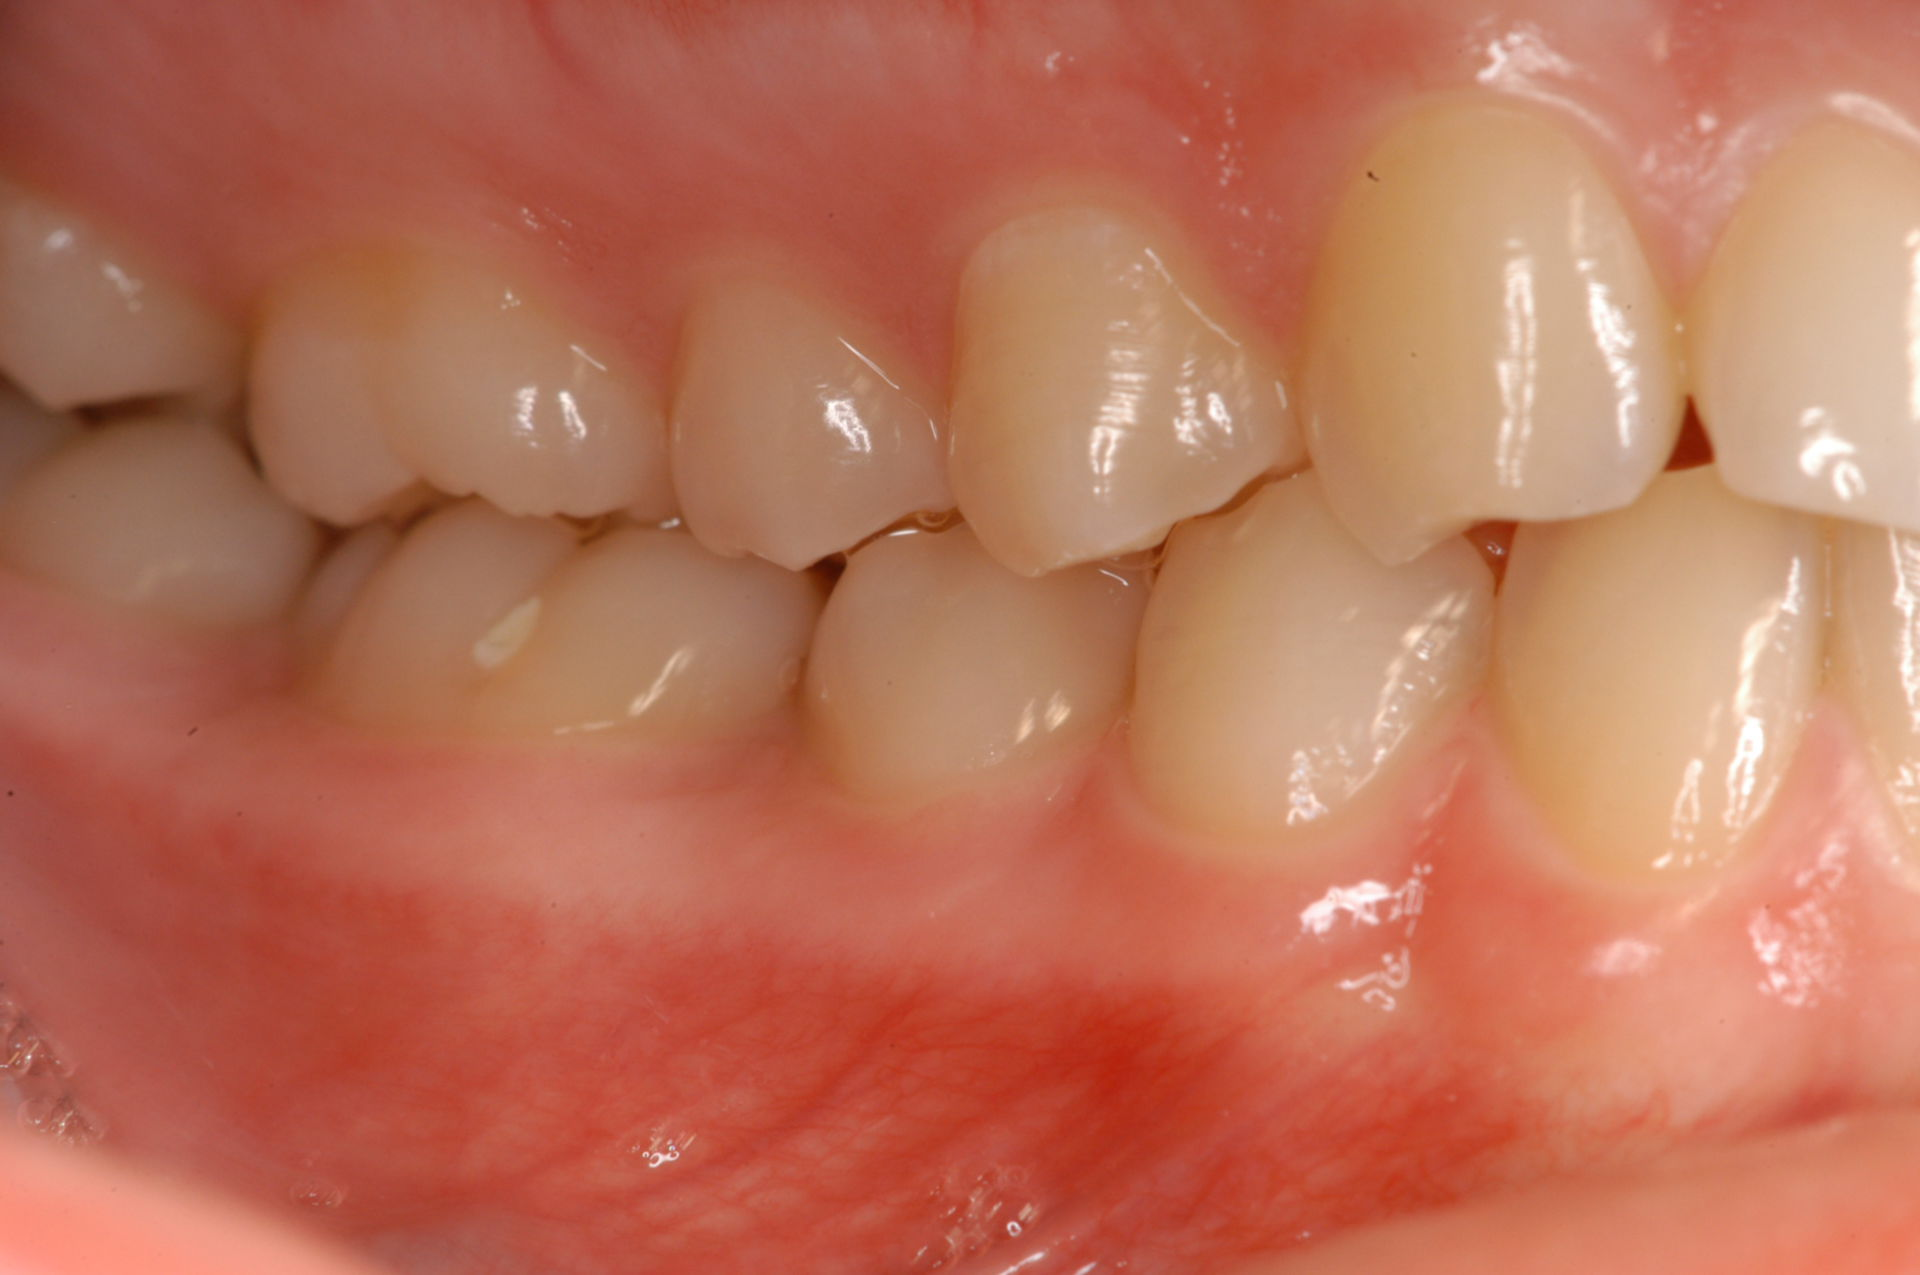 Healthy teeth caries-free view on the left